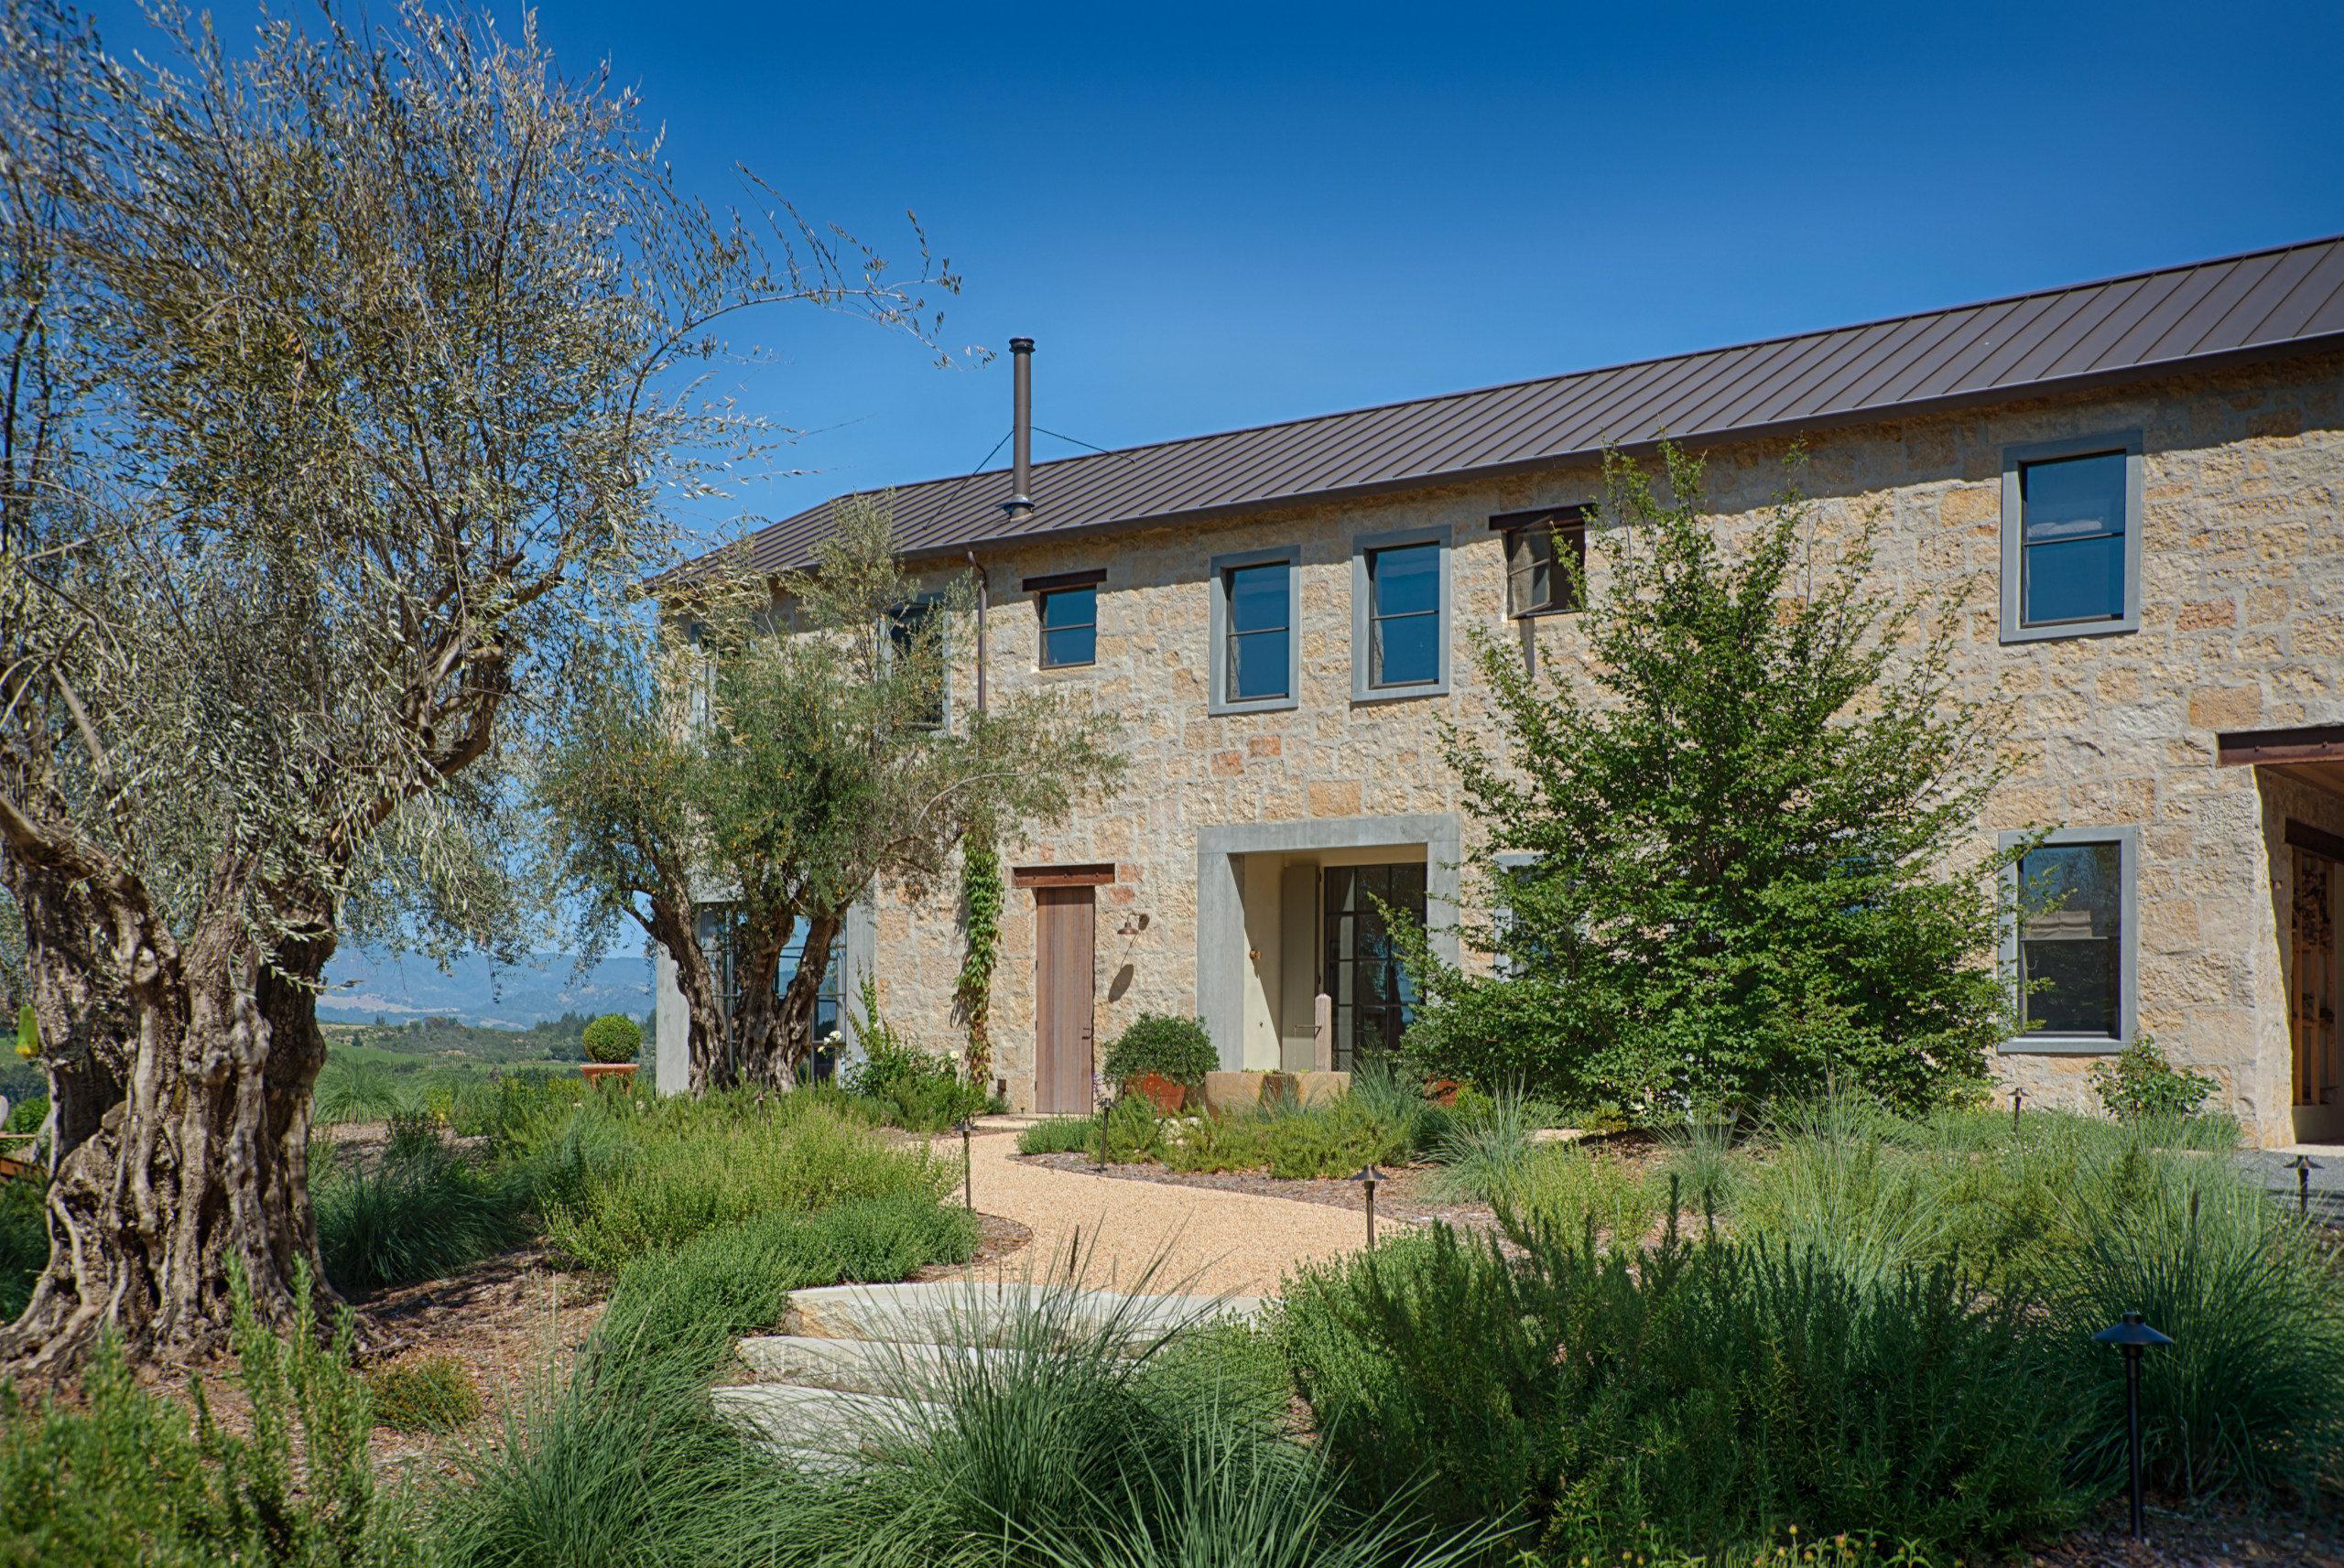 Ancient olive trees on the approach to the cottage, estate, facade, farmhouse, home, house, property, real estate, residential area, sky, villa, window